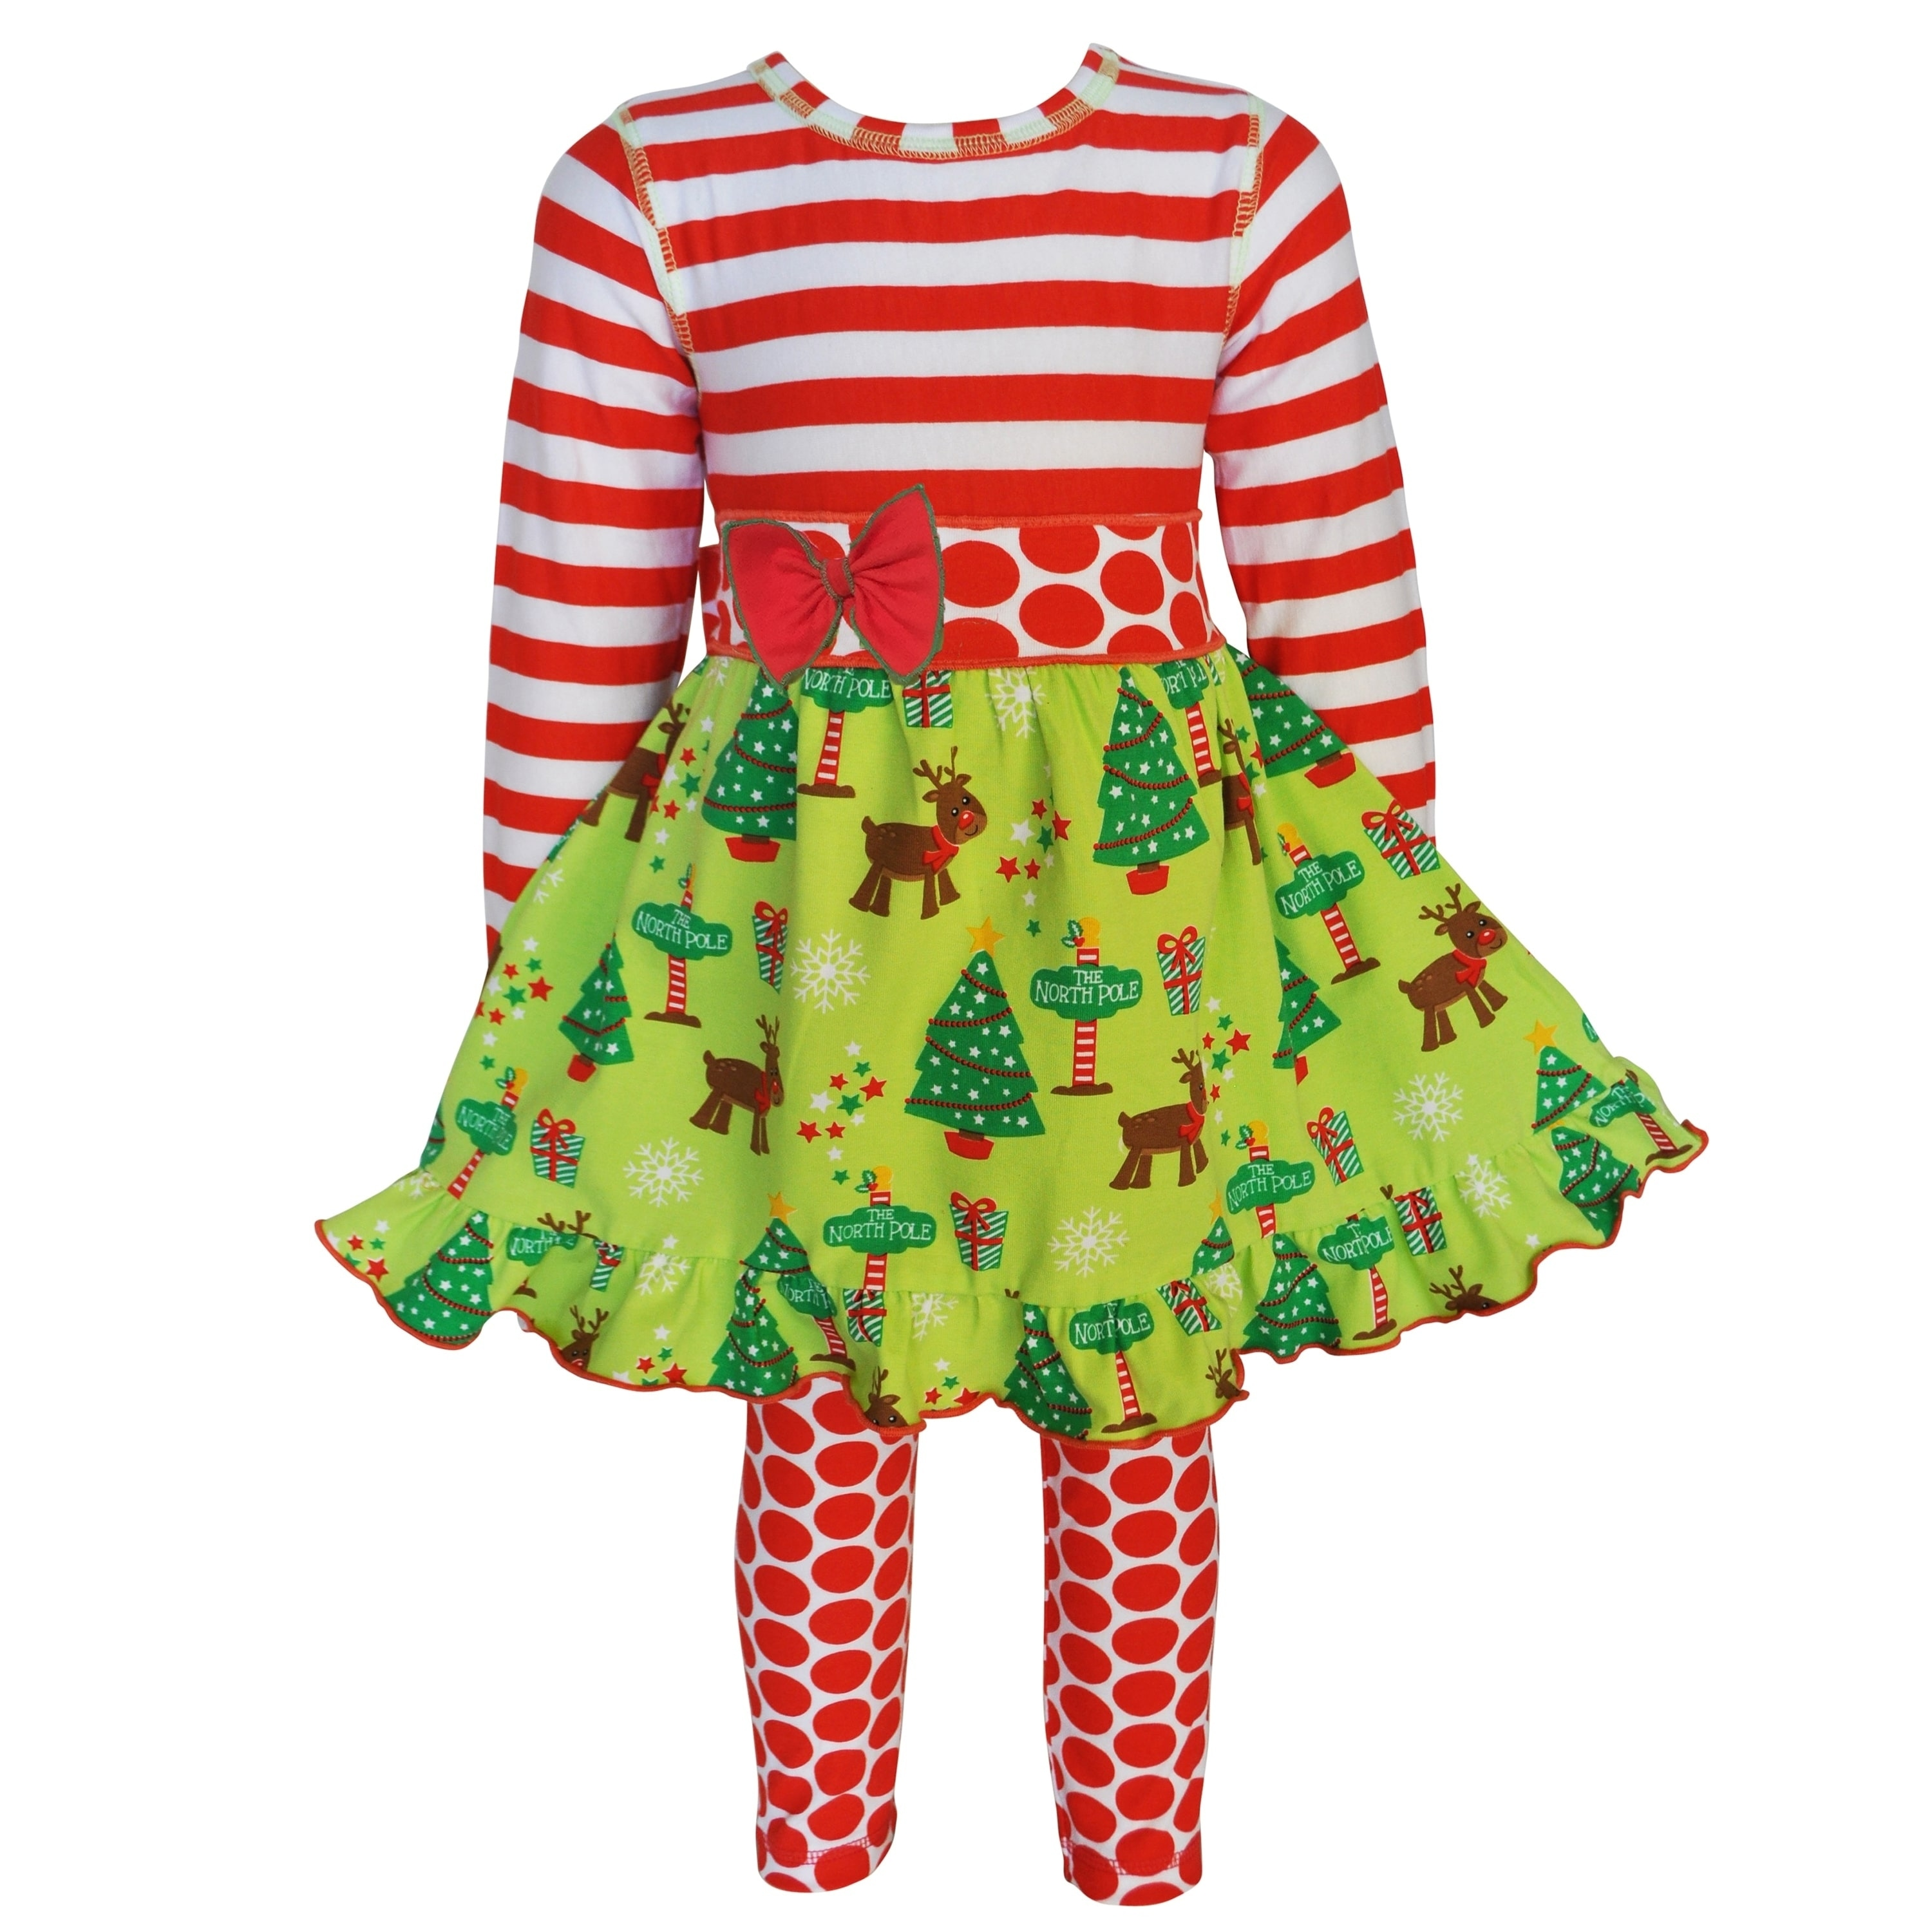 AnnLoren AnnLoren Girls Christmas Dress with Red Polka Do...